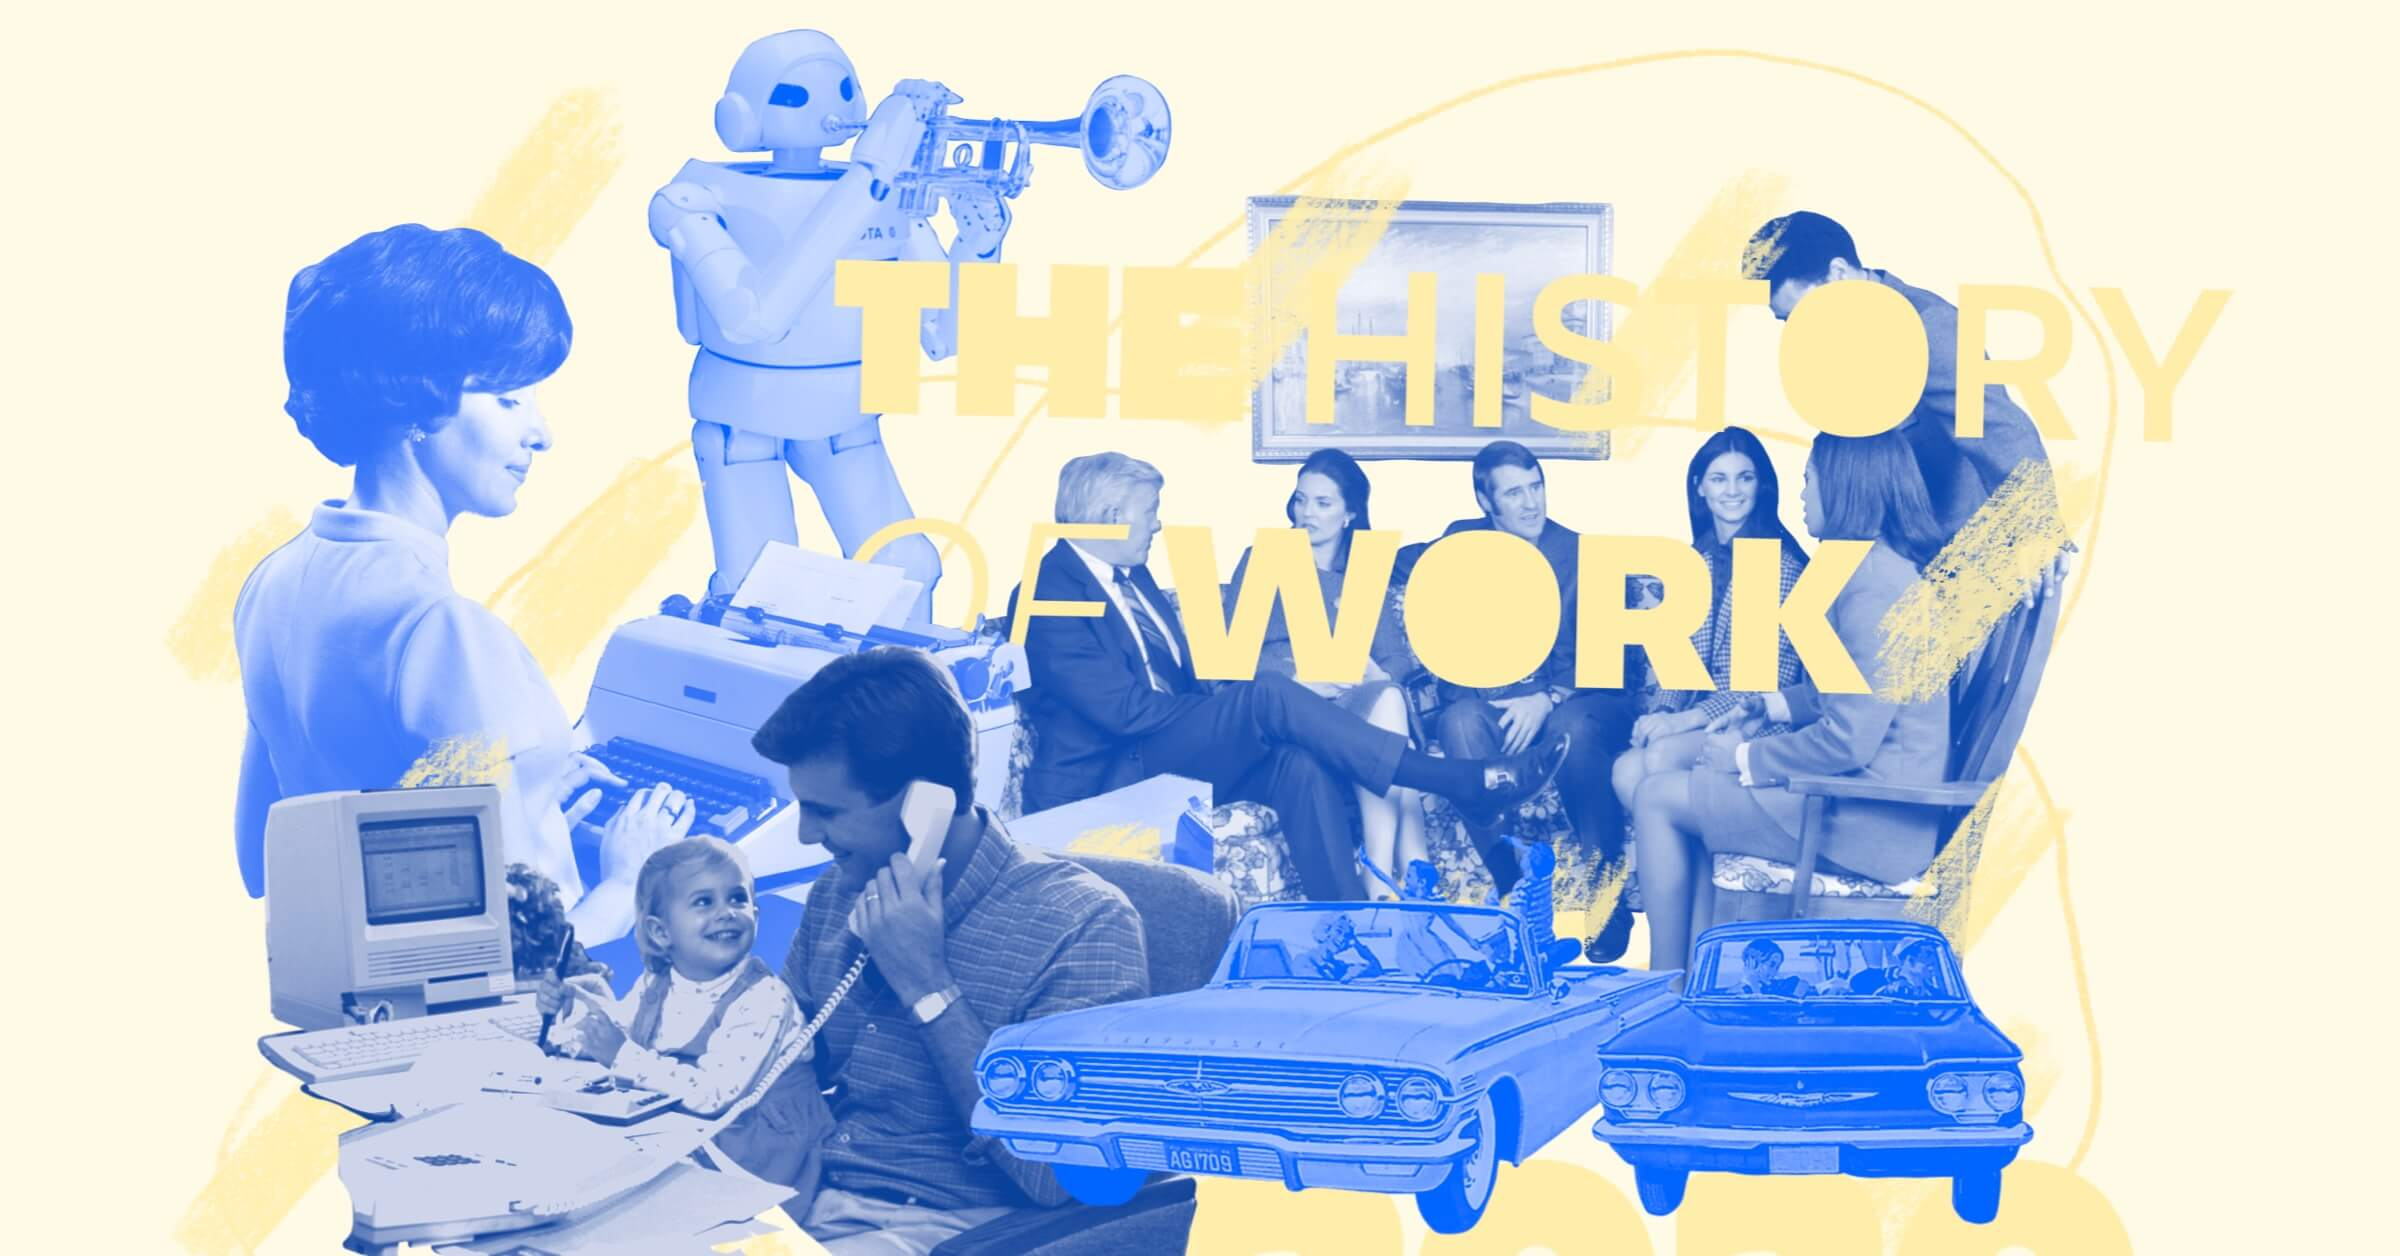 A 2020 Retrospective on the History of Work - Infographic